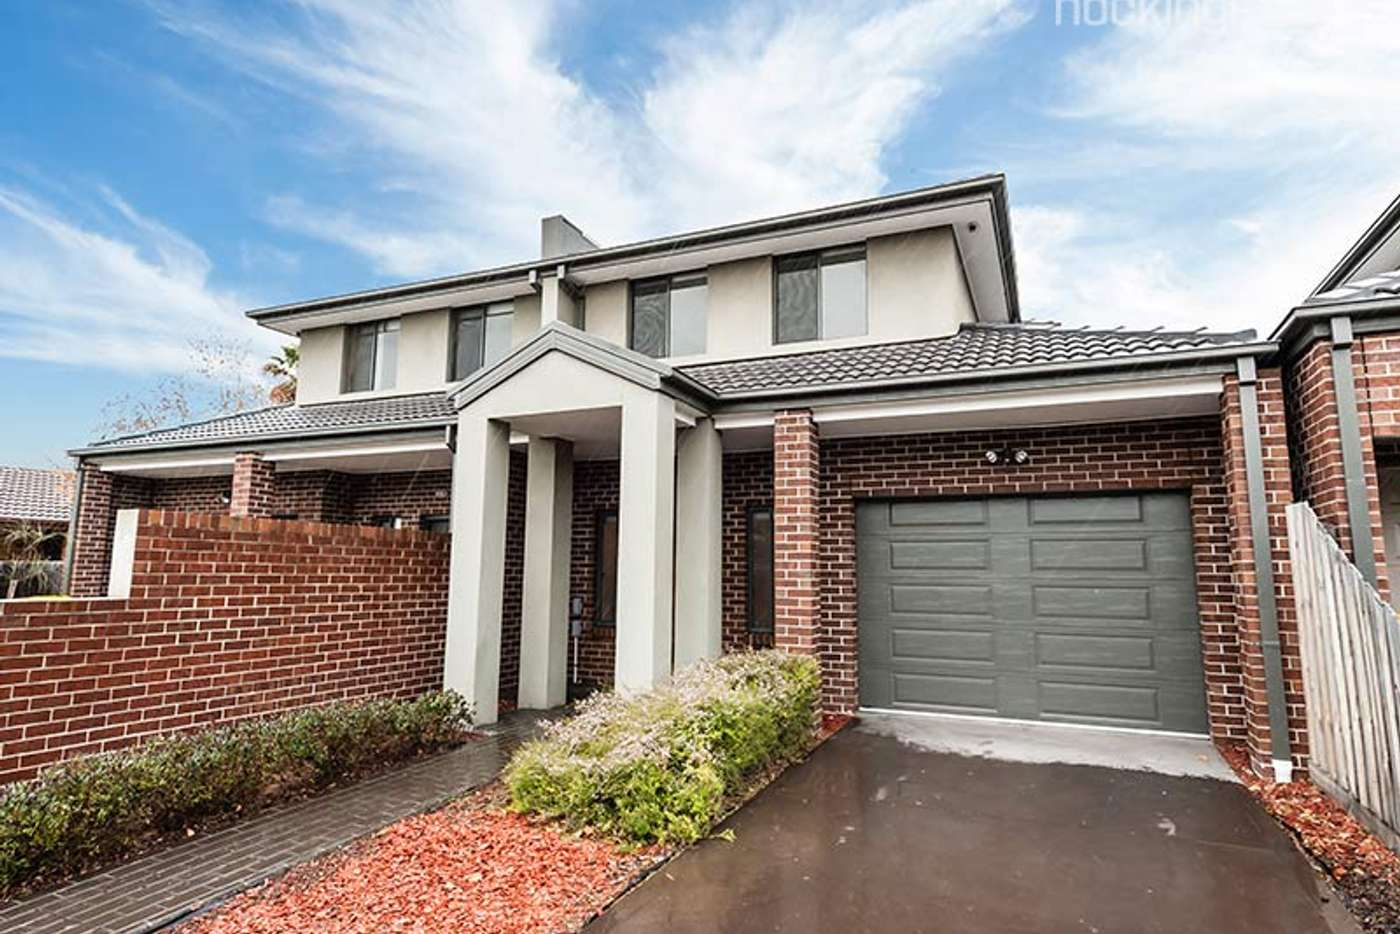 Main view of Homely house listing, 5B Renowden Street, Cheltenham VIC 3192